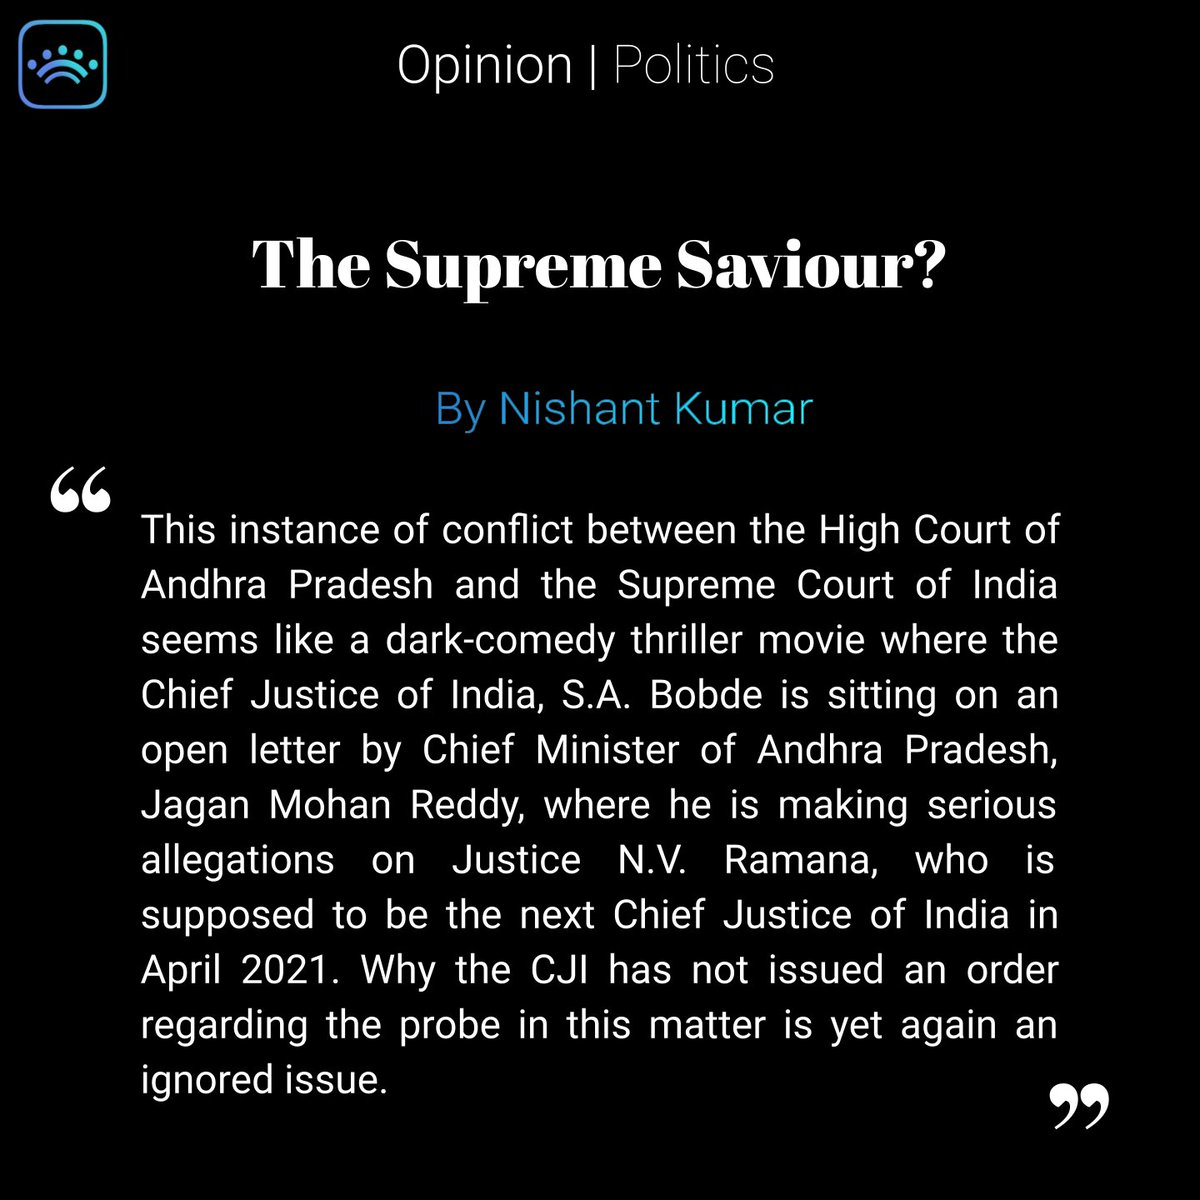 ...abuse of emergency powers and the role of the Judiciary in it.  Tap on the link to read more:   #India #government #federalism #judiciary #supremecourt #court #politics #constitution #Ambedkar #Nehru #president #CJI #bobde #highcourt #narendramodi (2/2)